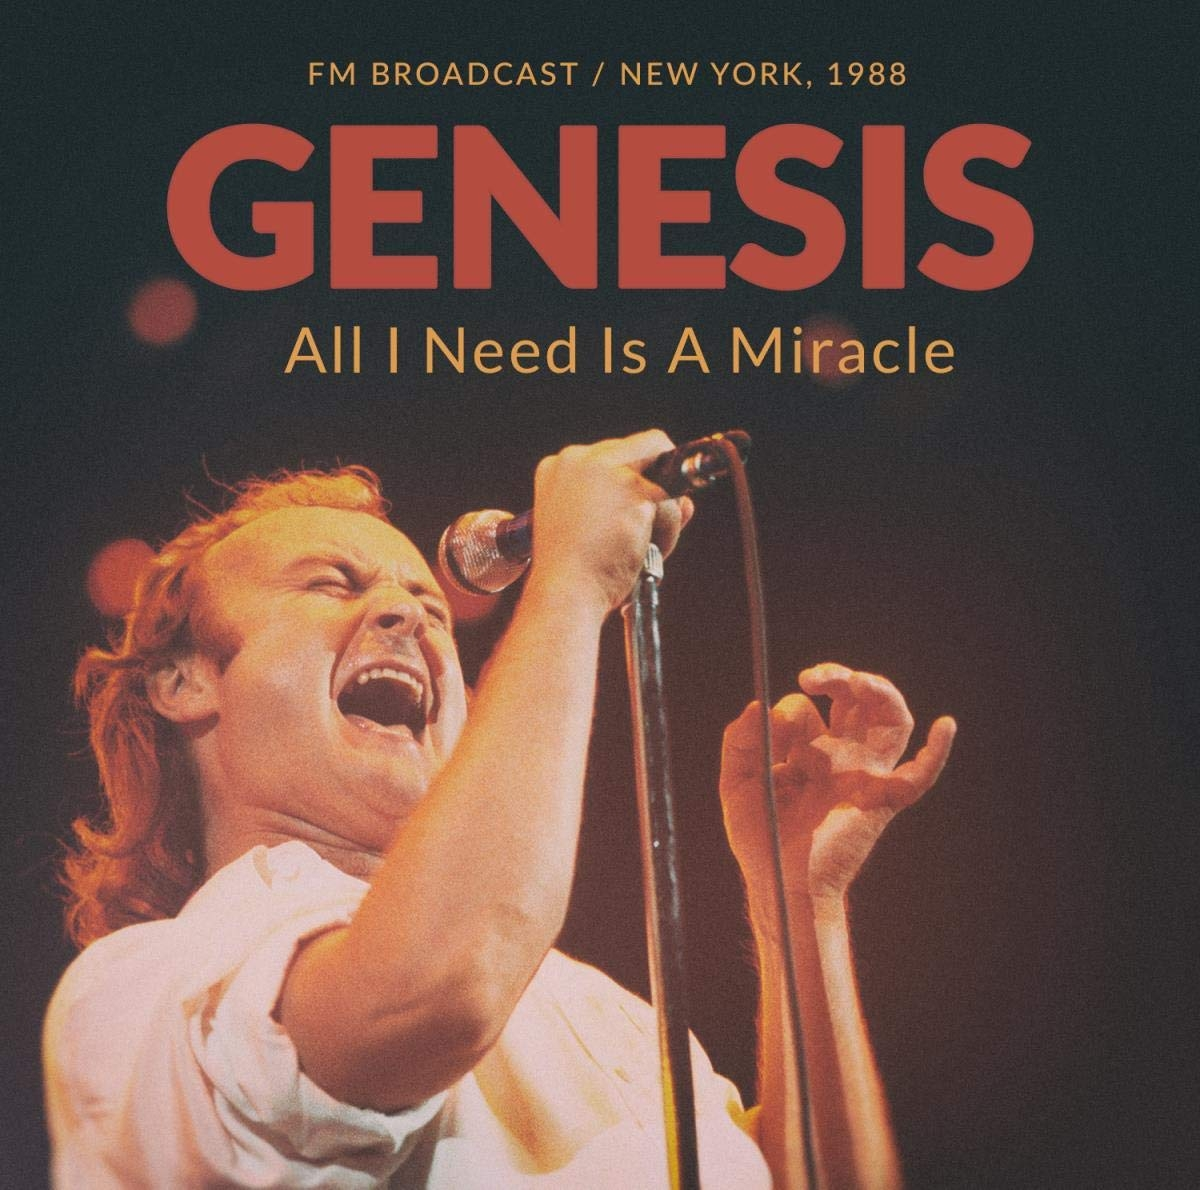 All I Need Is A Miracle: New York 1988